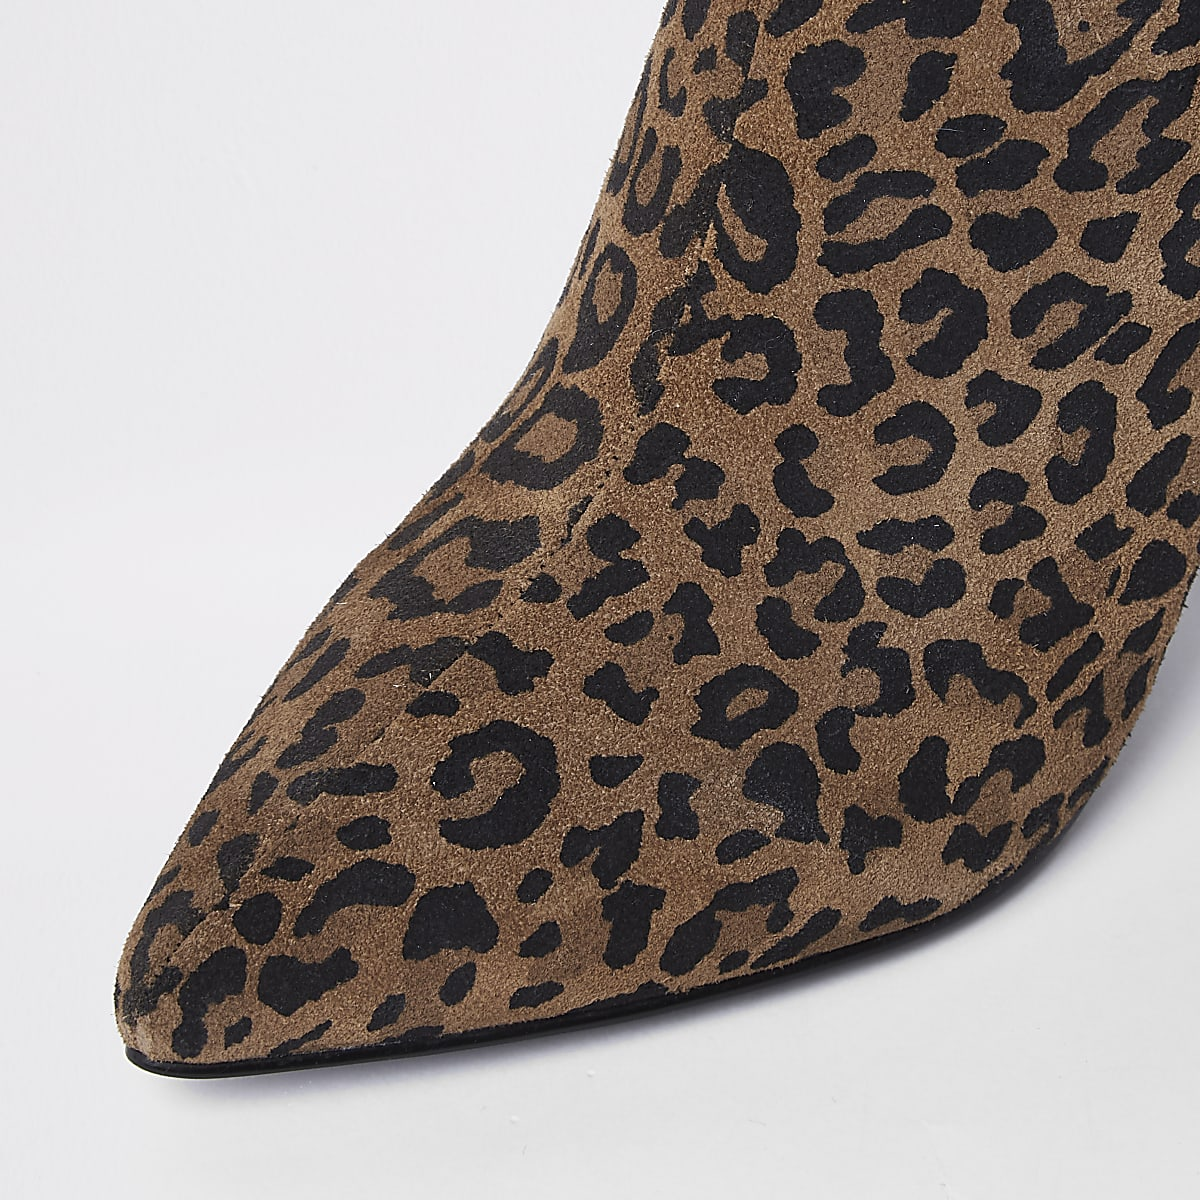 50803b4909c5 Brown wide fit leopard print ankle boots - Boots - Shoes   Boots - women